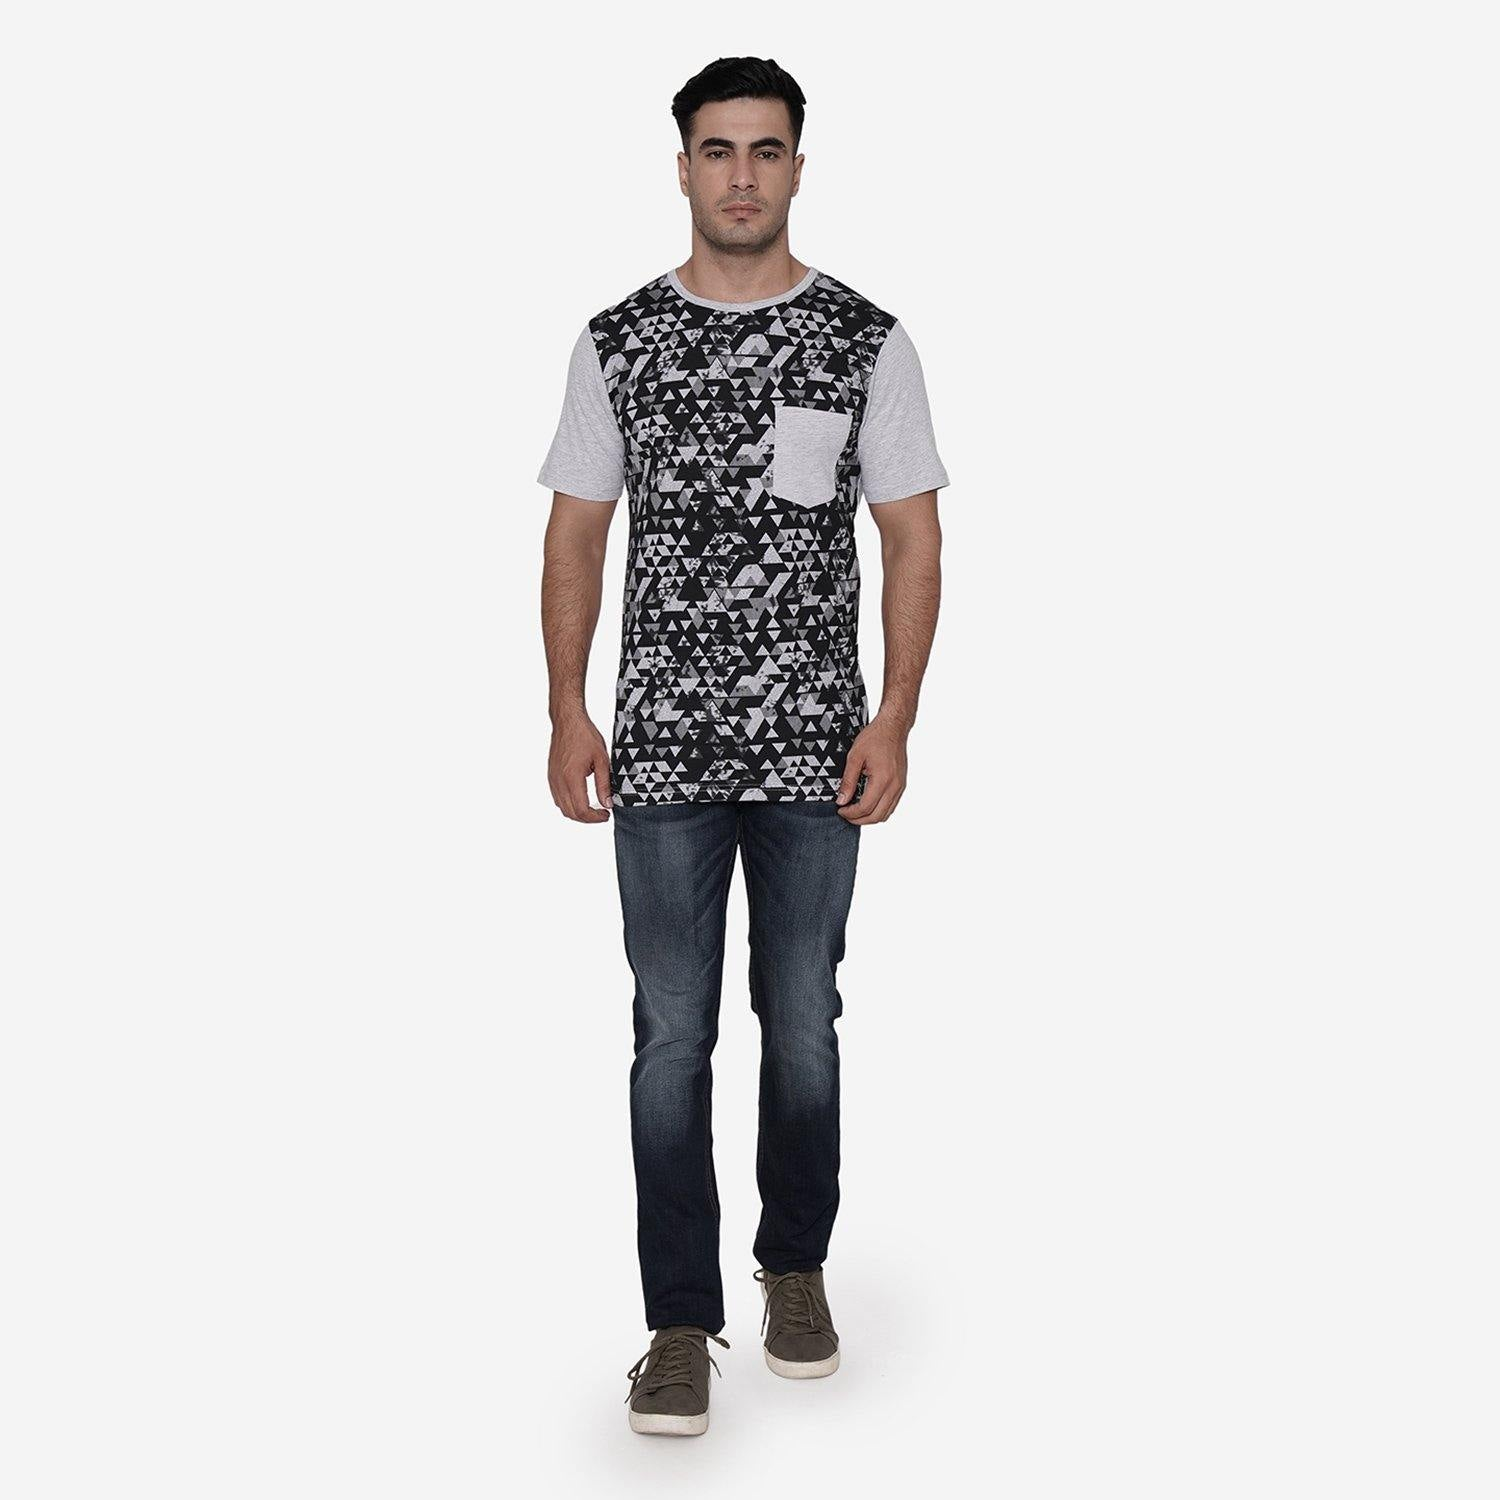 Men's Printed Half Sleeve Casual T-Shirt For Summer